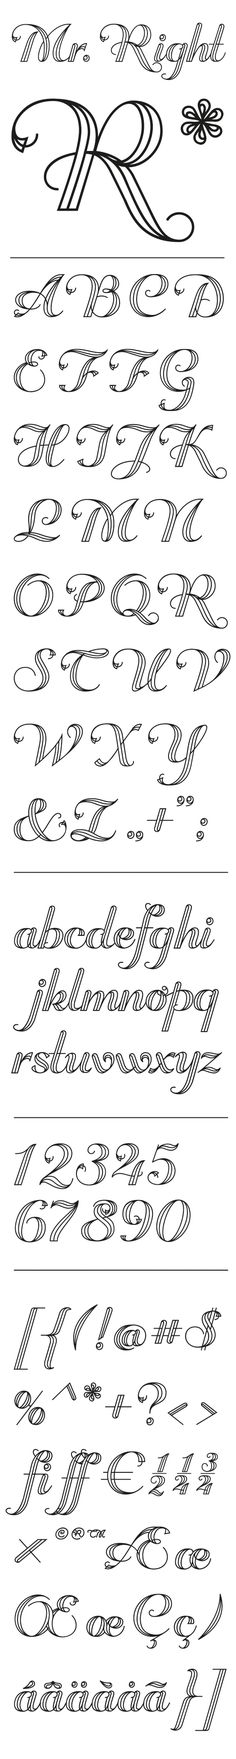 Mr Right by DTM INC, via Behance. Hate the name. Love the font.